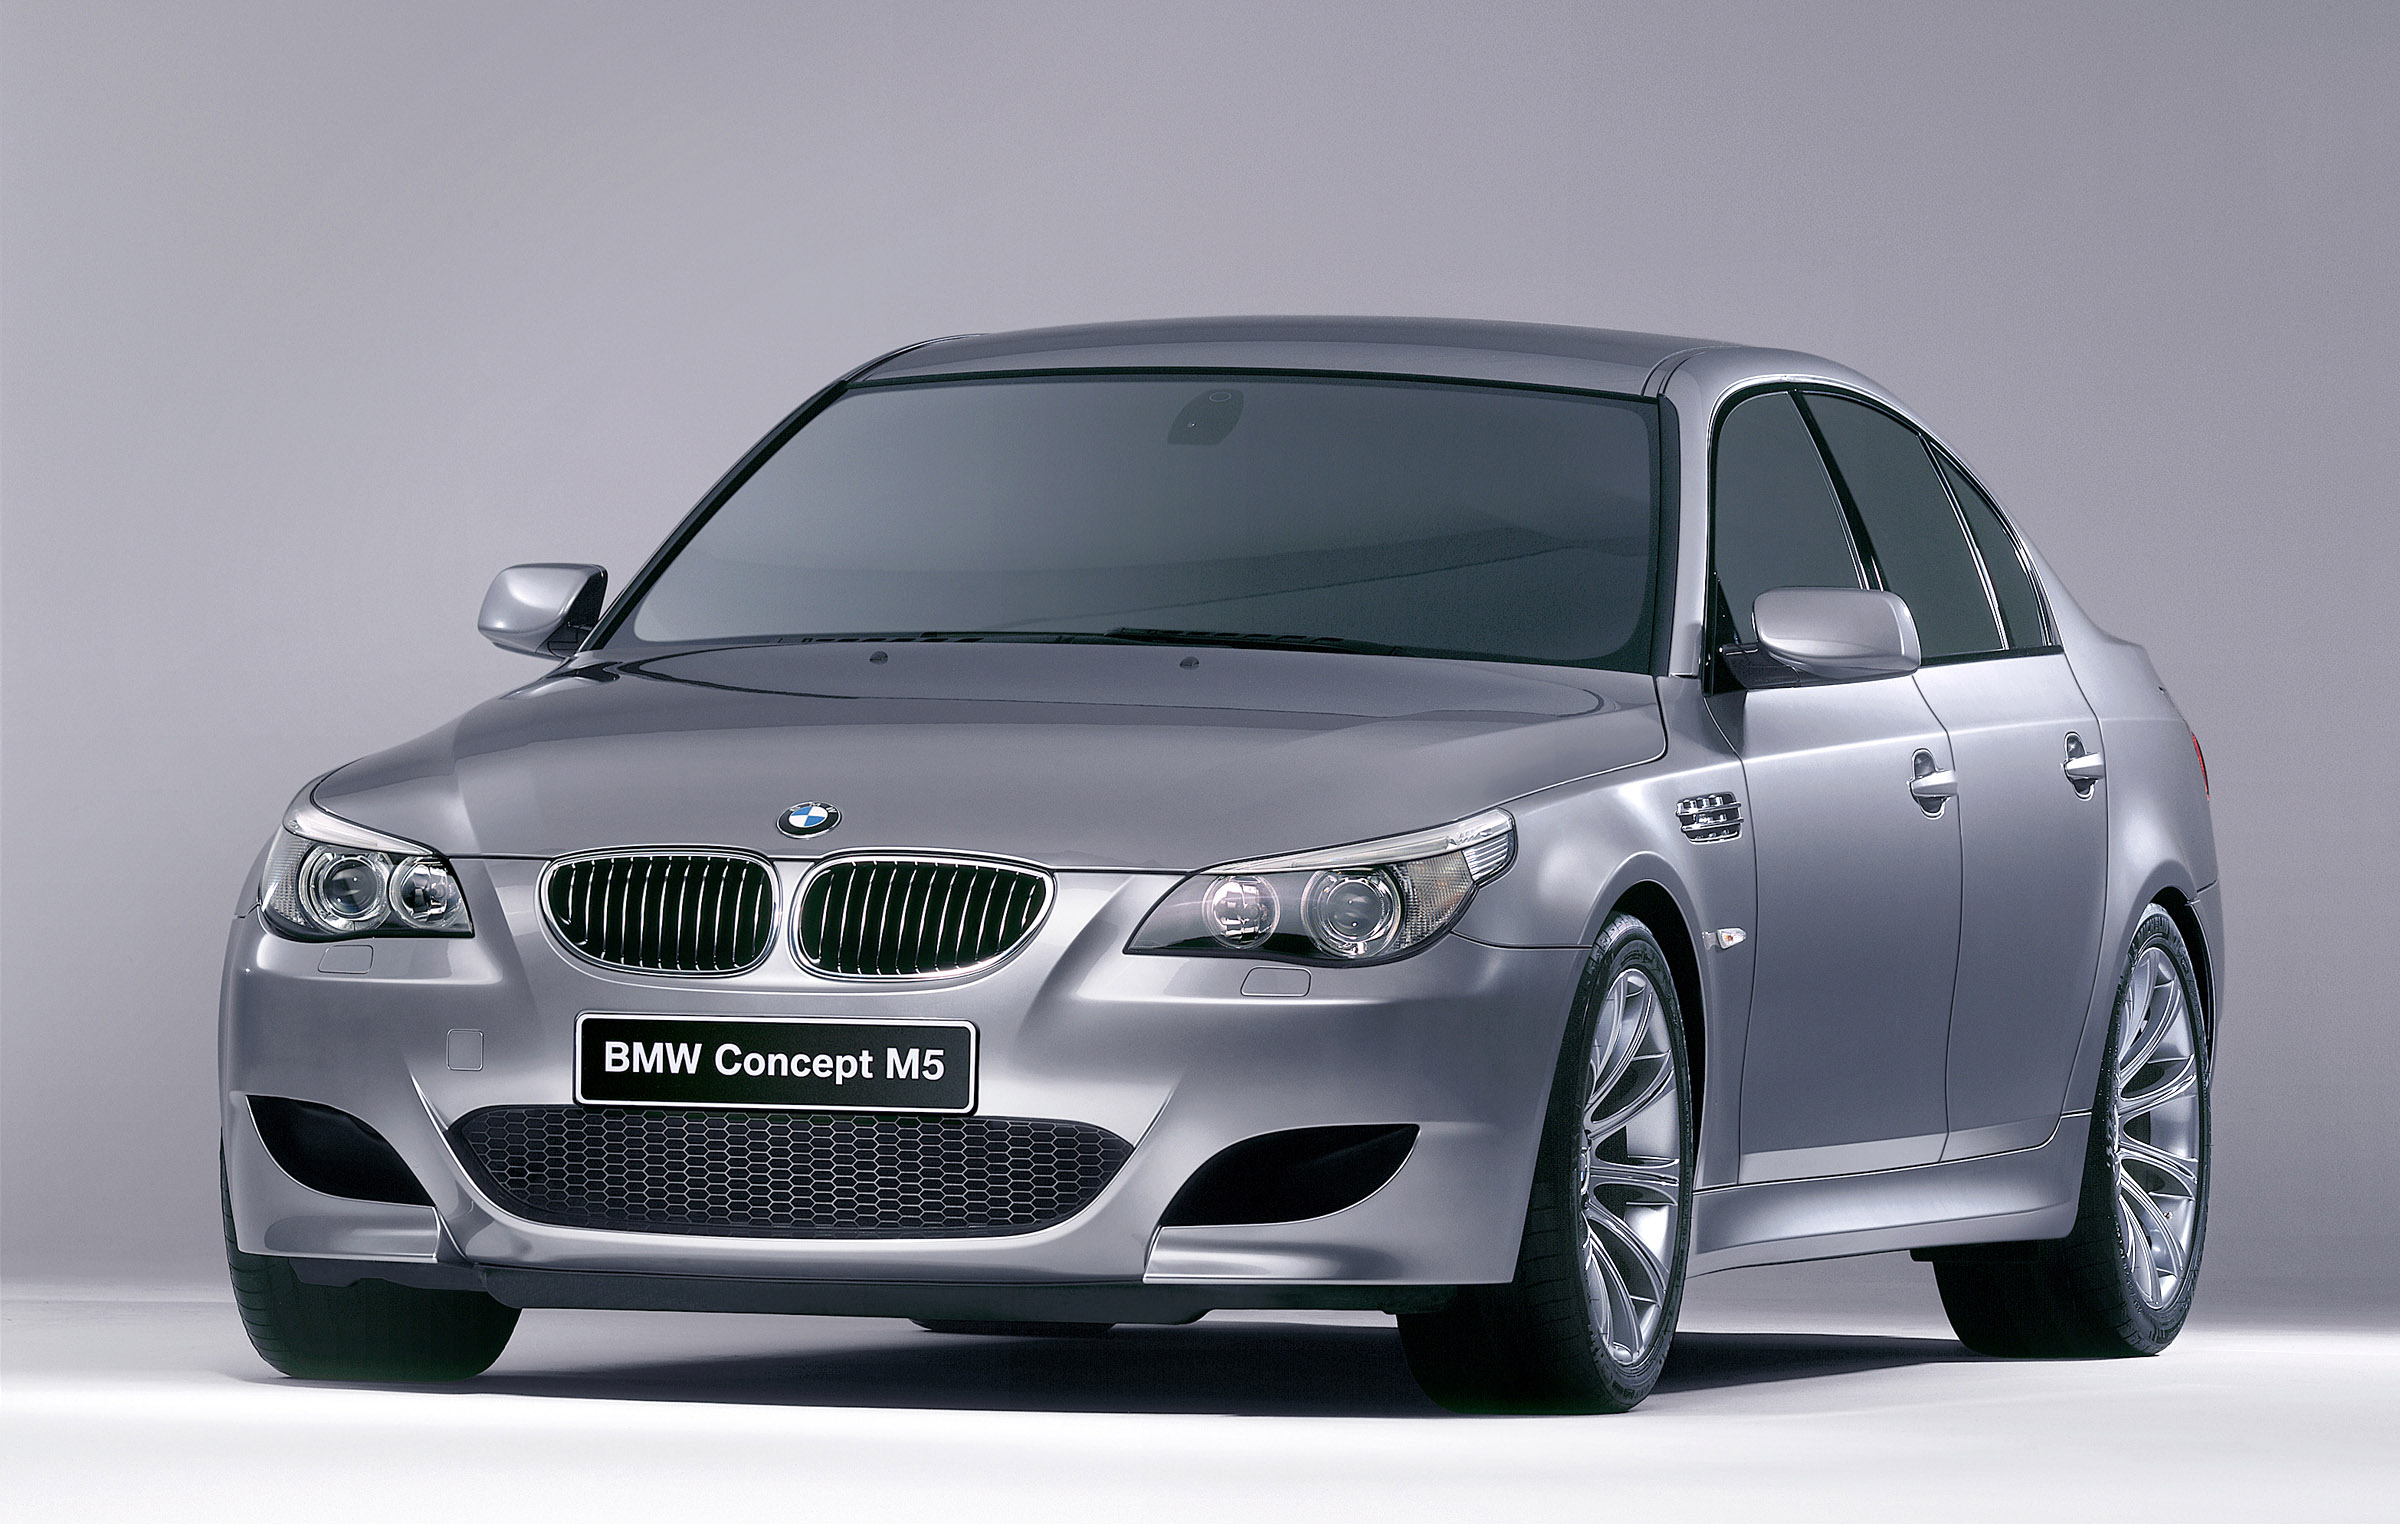 2008 BMW Concept M5 - Car Pictures